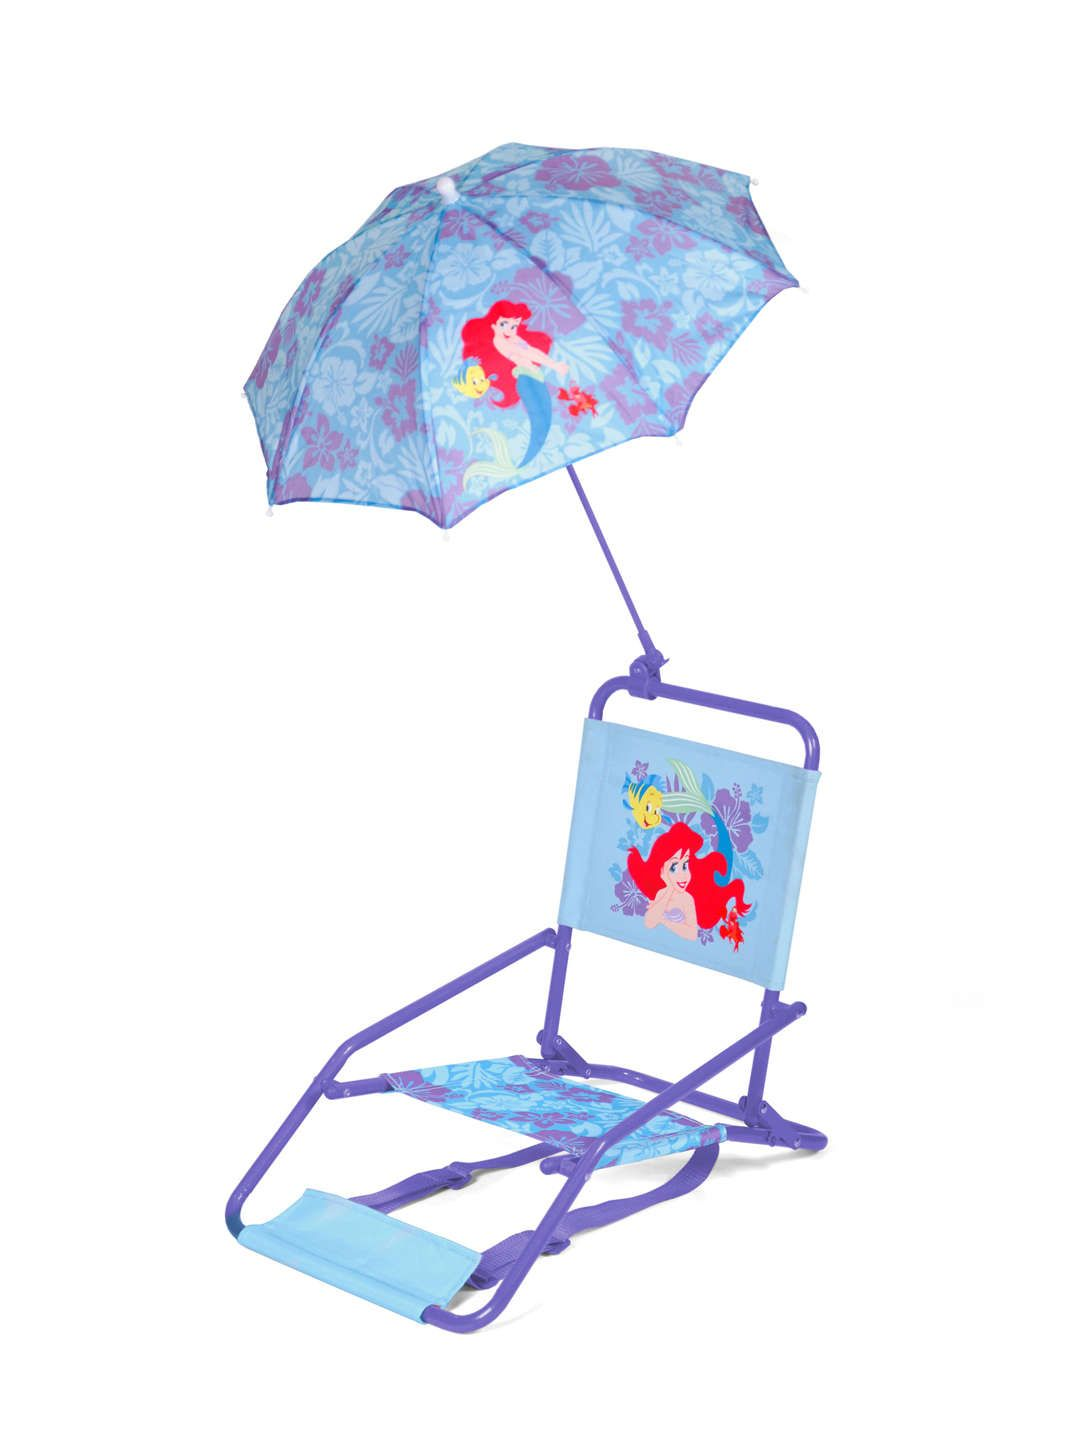 toddler beach chair with umbrella covers victoria bc disney ariel chairs and